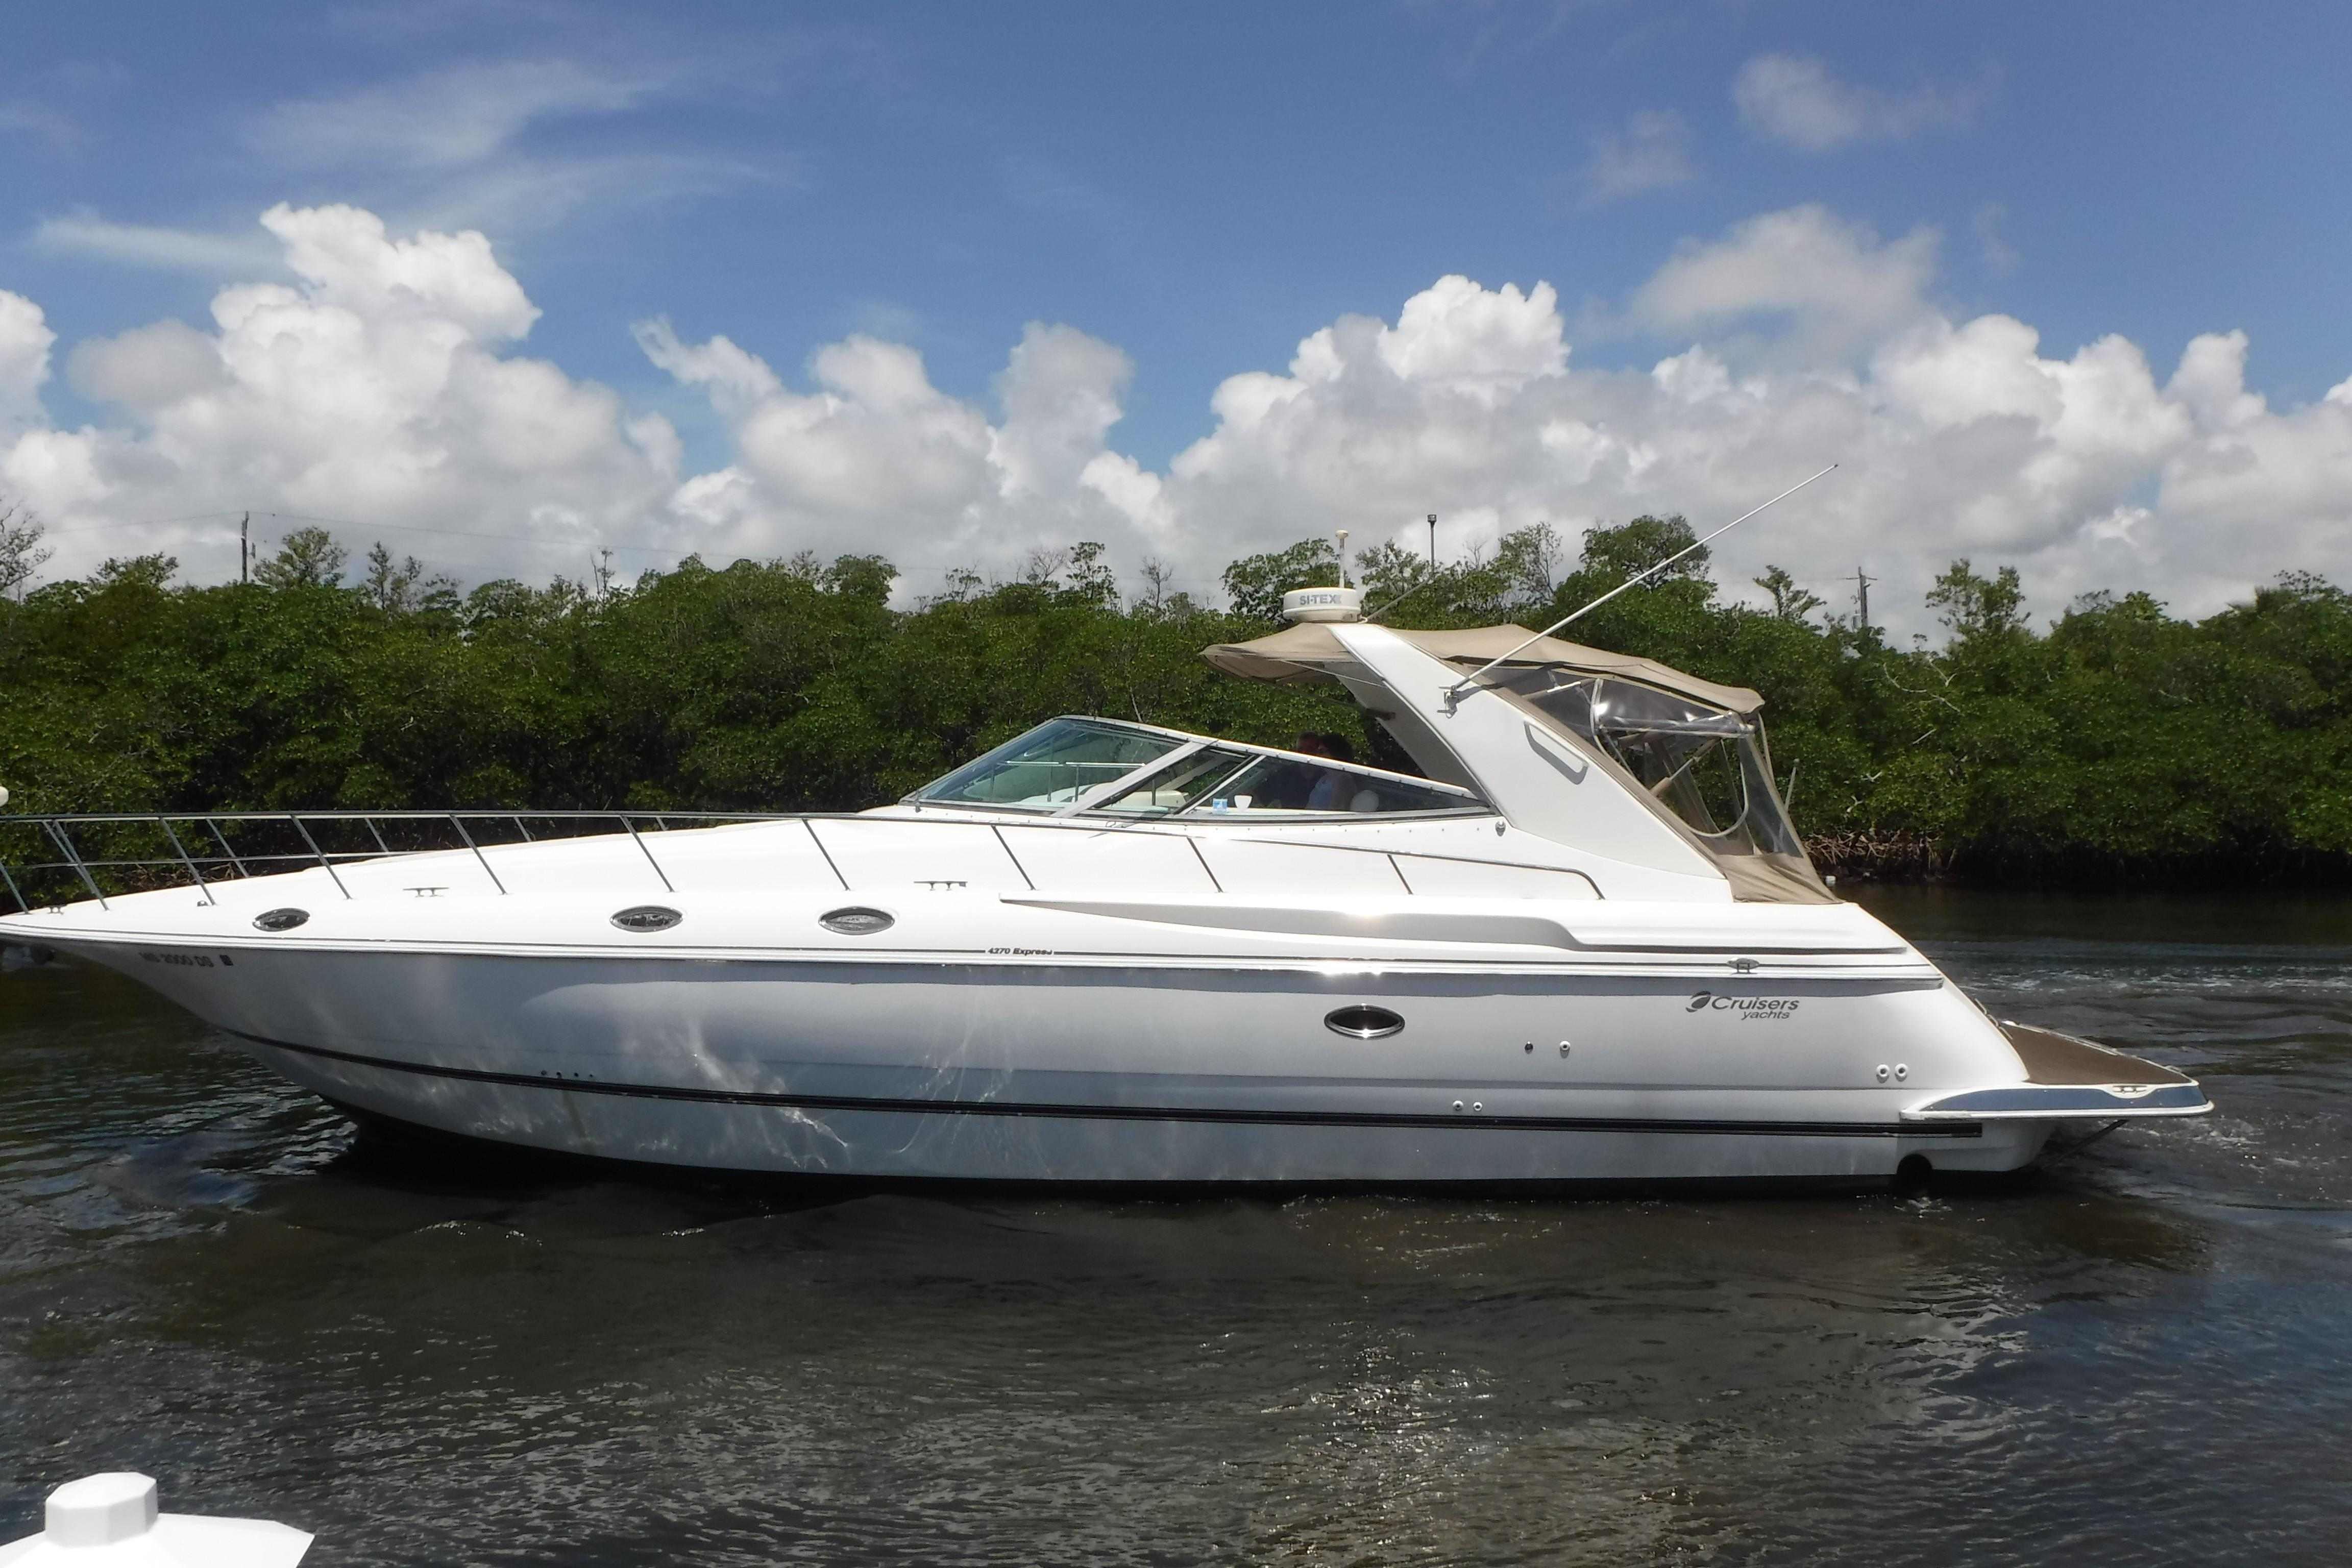 build cabins heritage cabin about finest boats the carver for building yachts strong cruiser